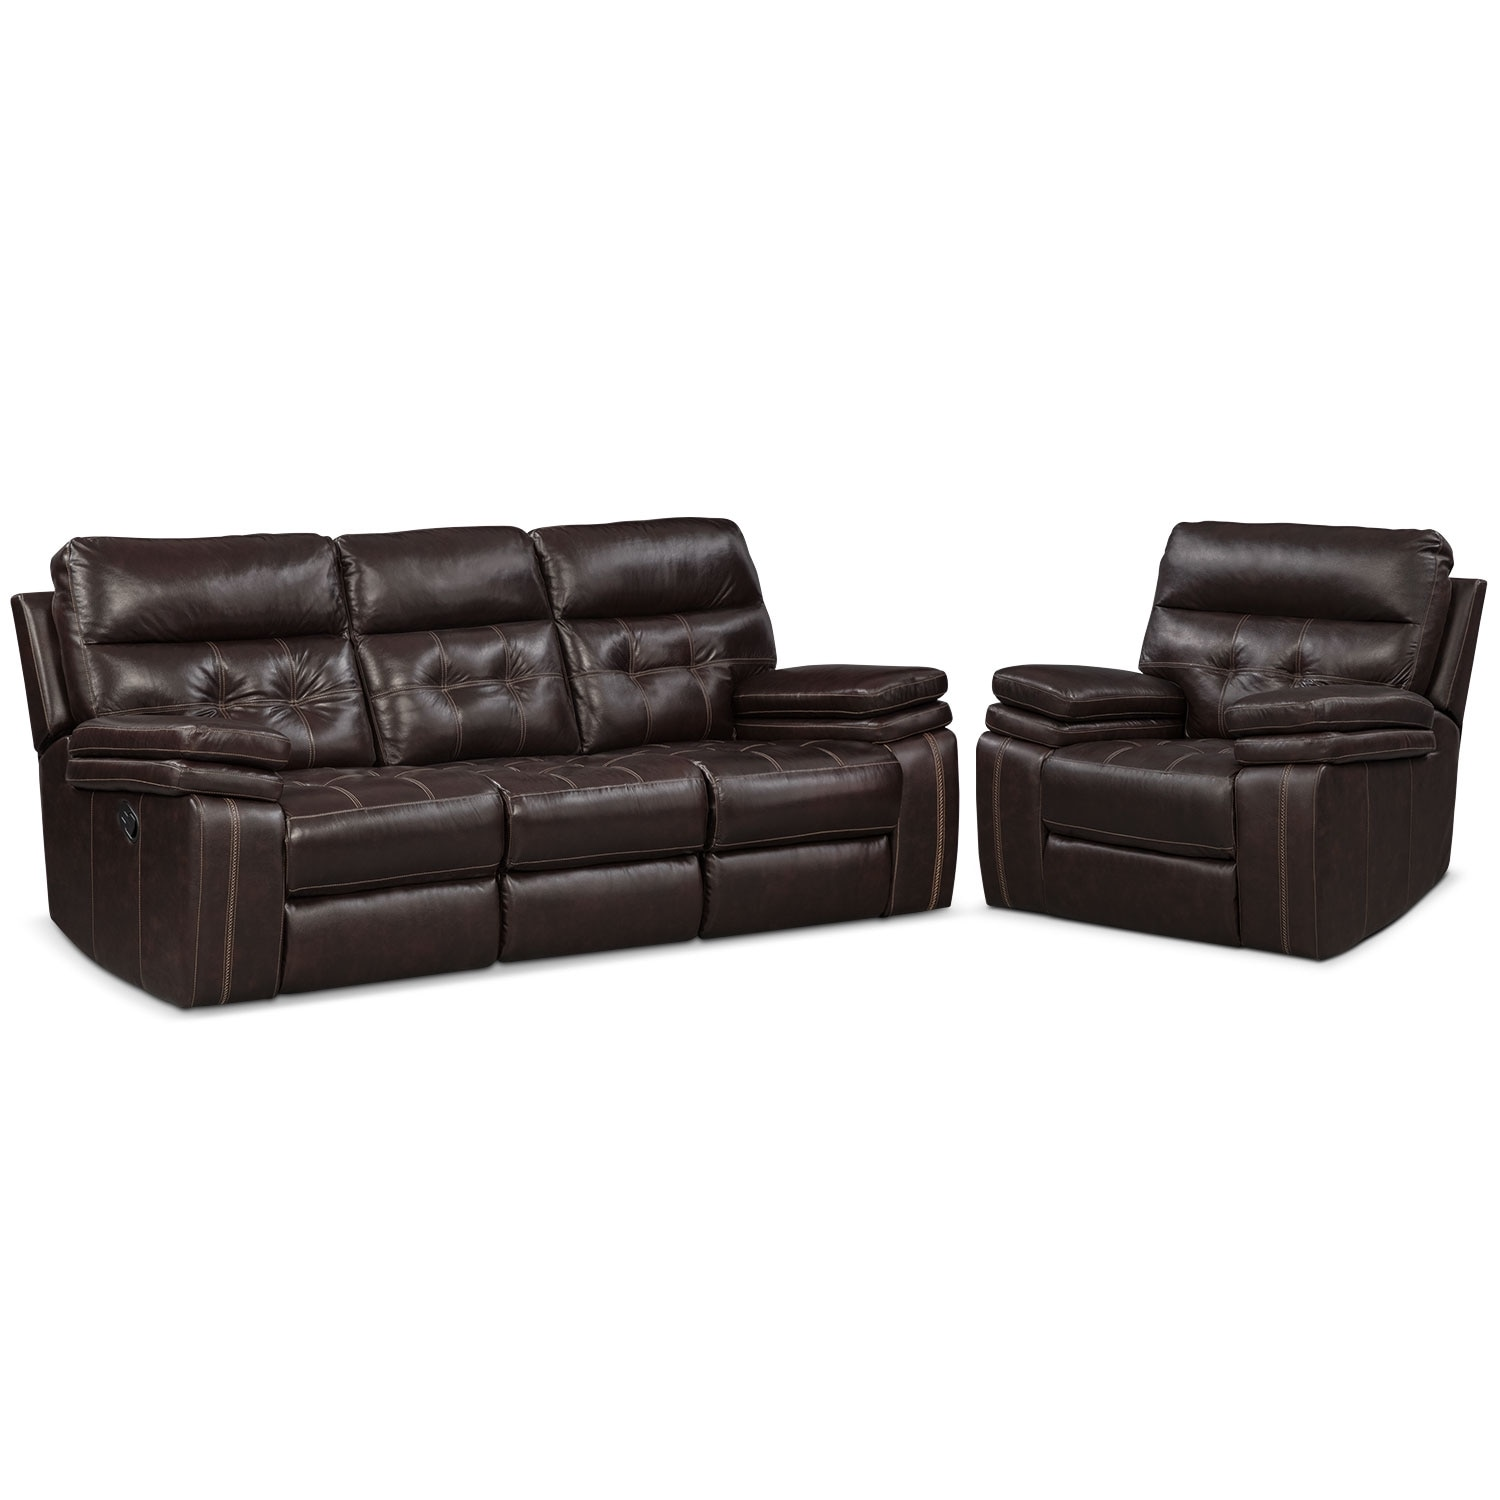 Living Room Furniture - Brisco Manual Reclining Sofa and Recliner Set - Brown